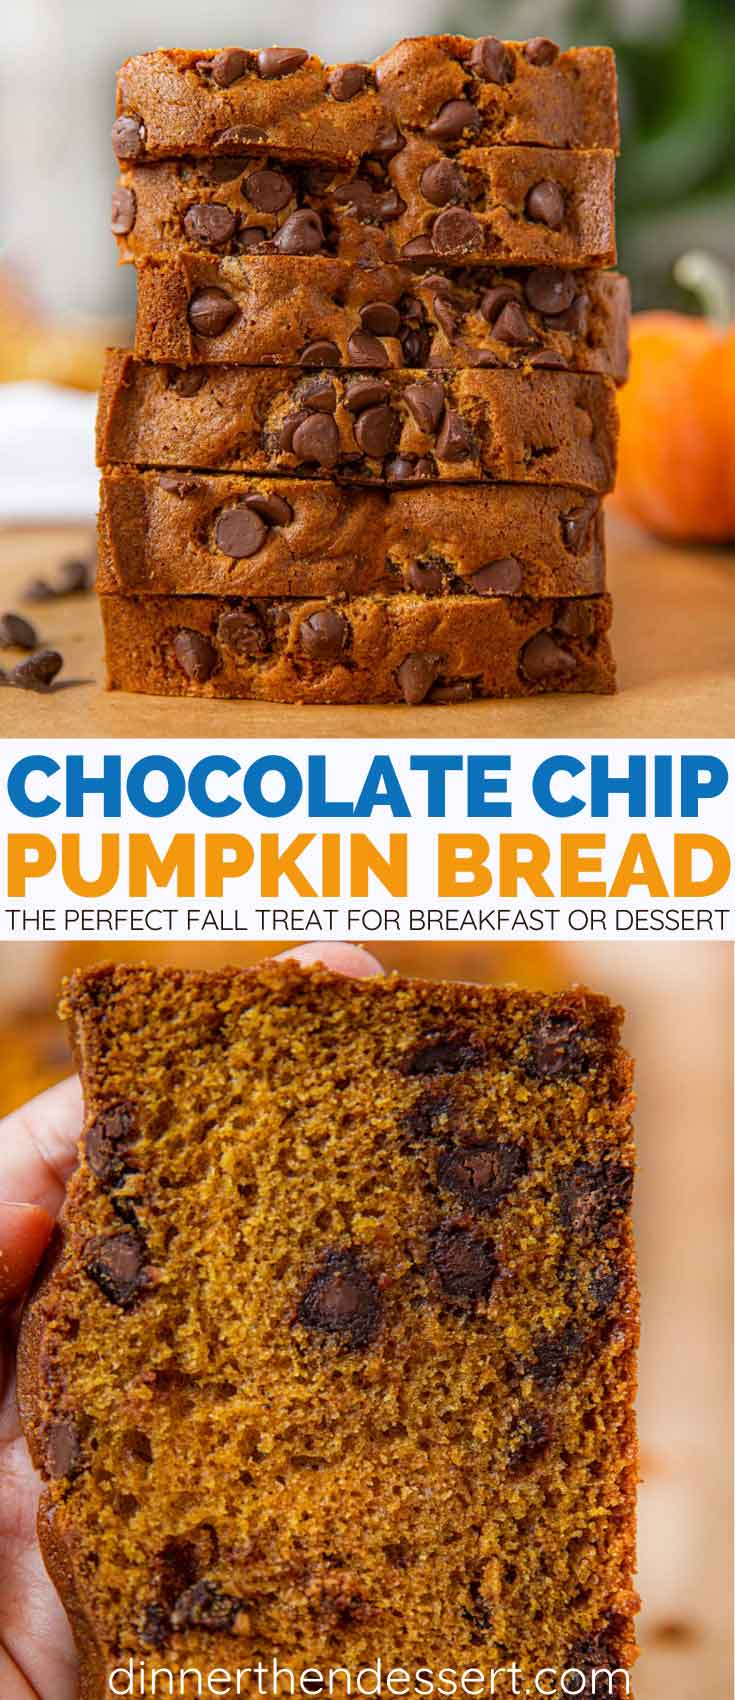 Pumpkin Chocolate Chip Bread Collage